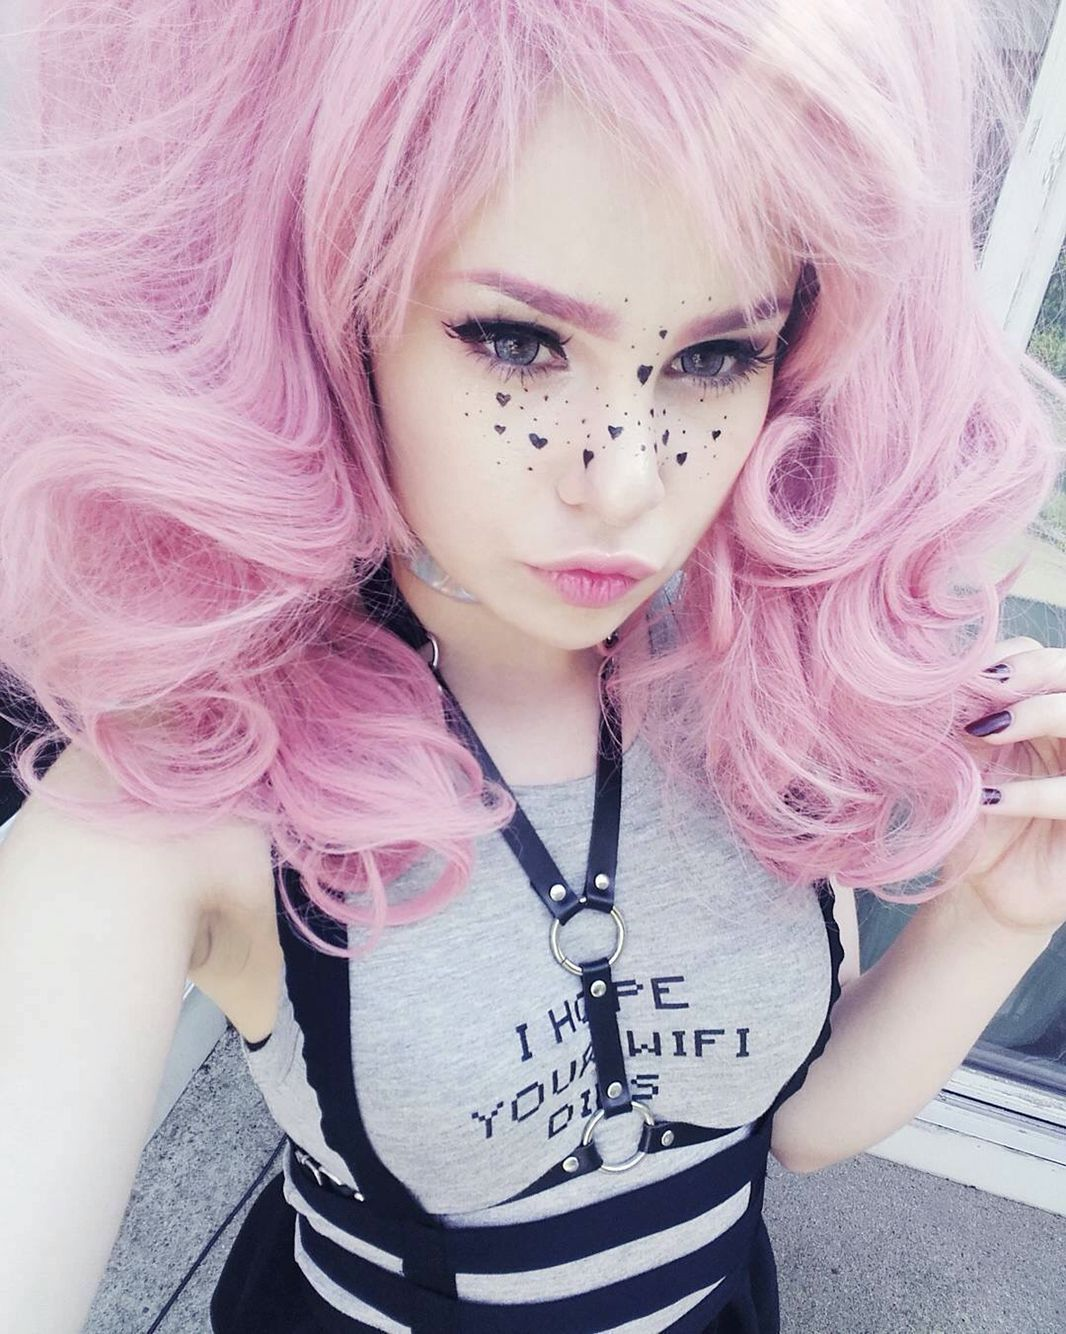 Pink hair and heart freckles. A nice idea for a photo! in 2019 | Pastel goth hair, Goth hair ...